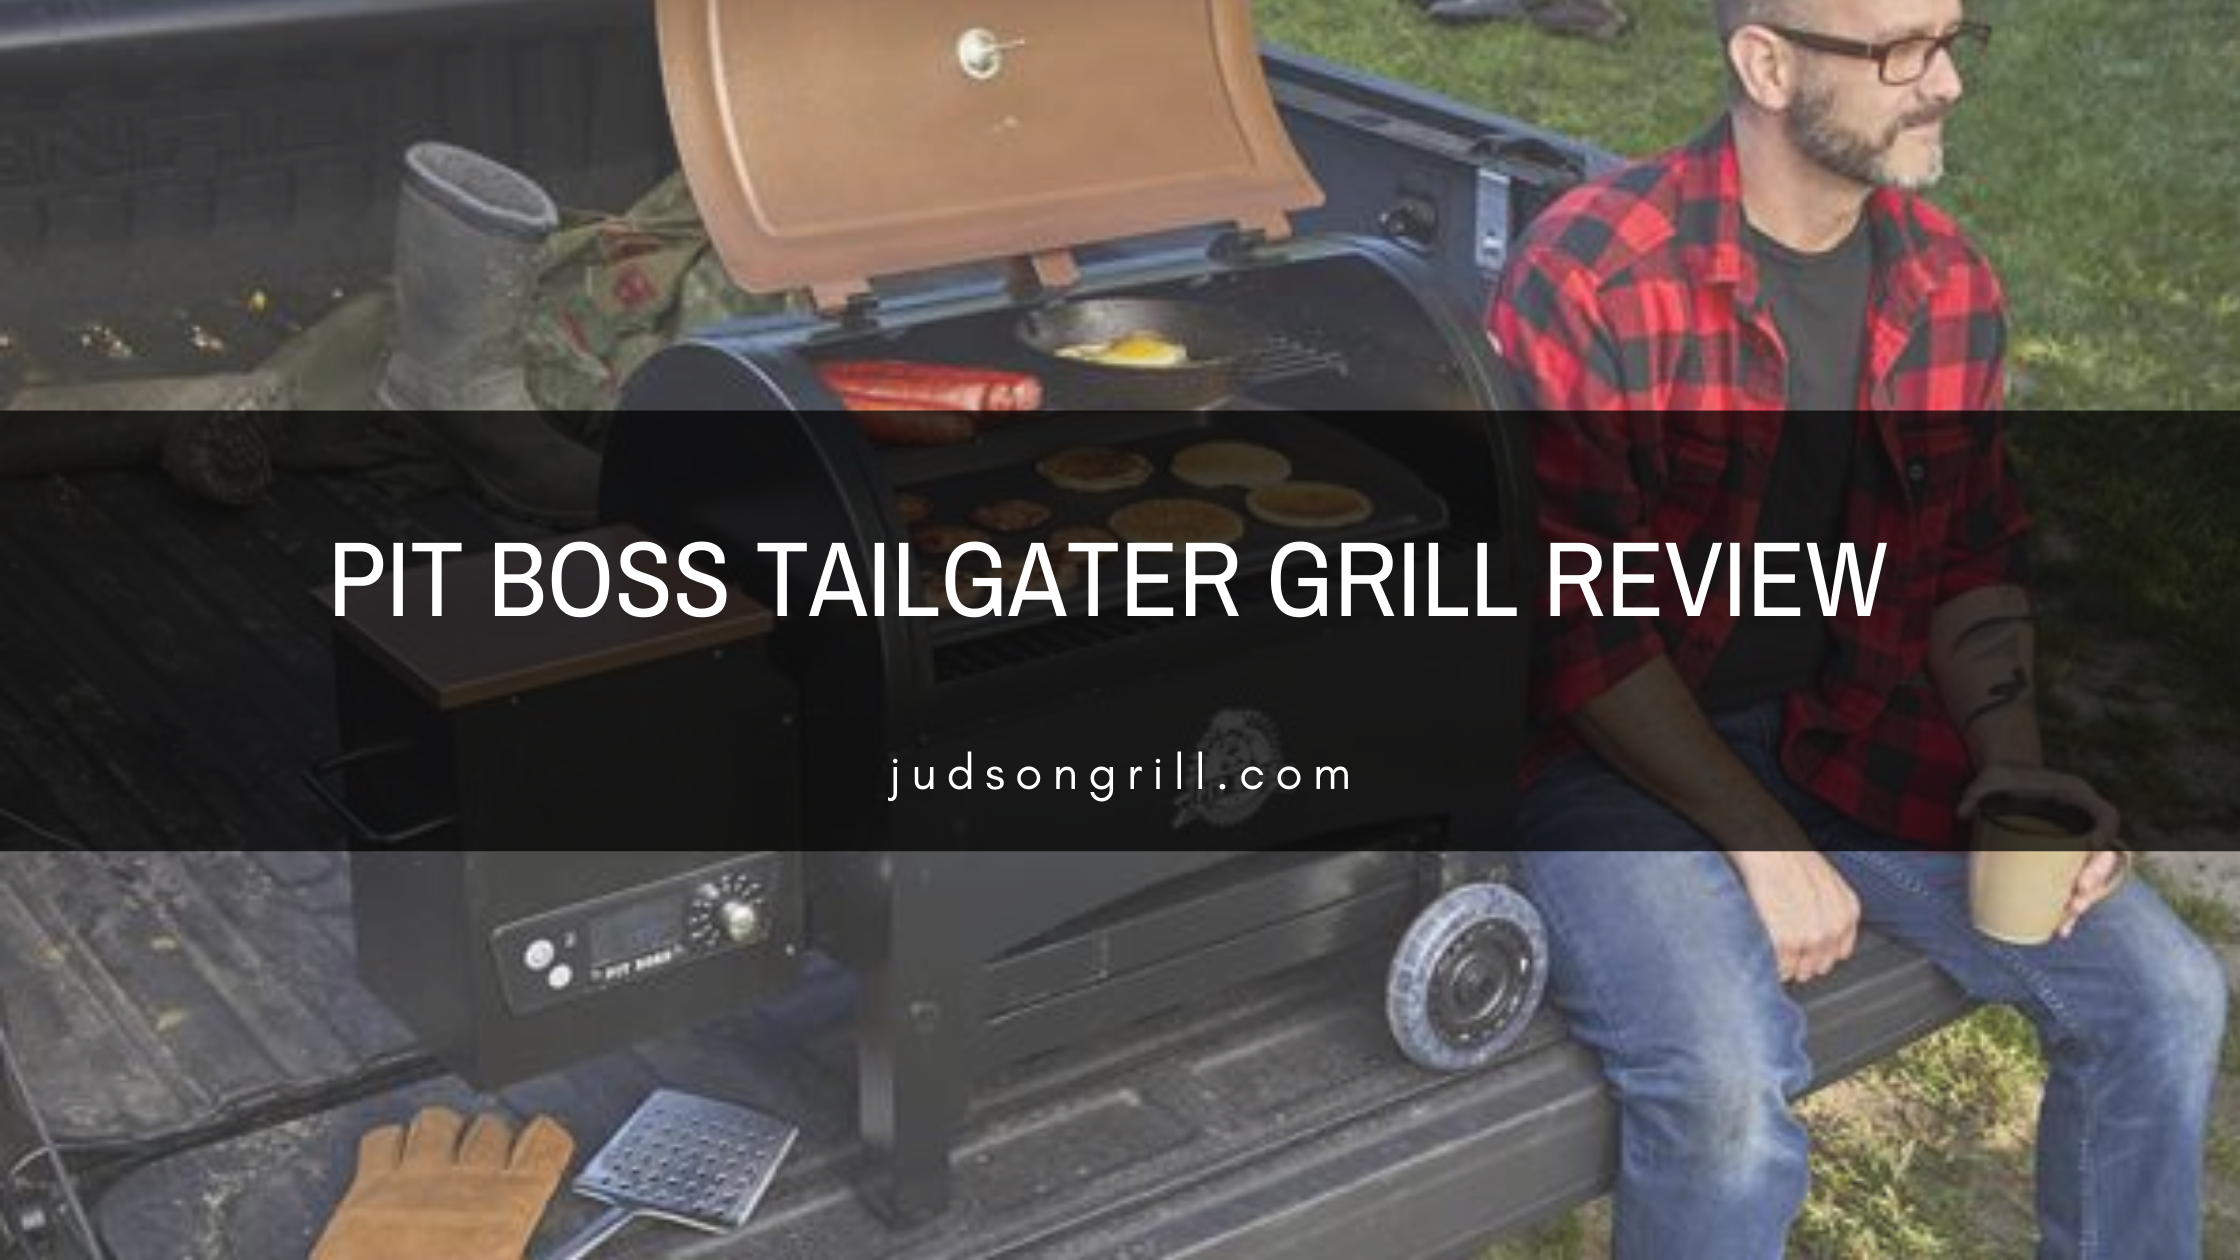 Pit Boss Tailgater Grill Review - The Best Wood Pellet Grill